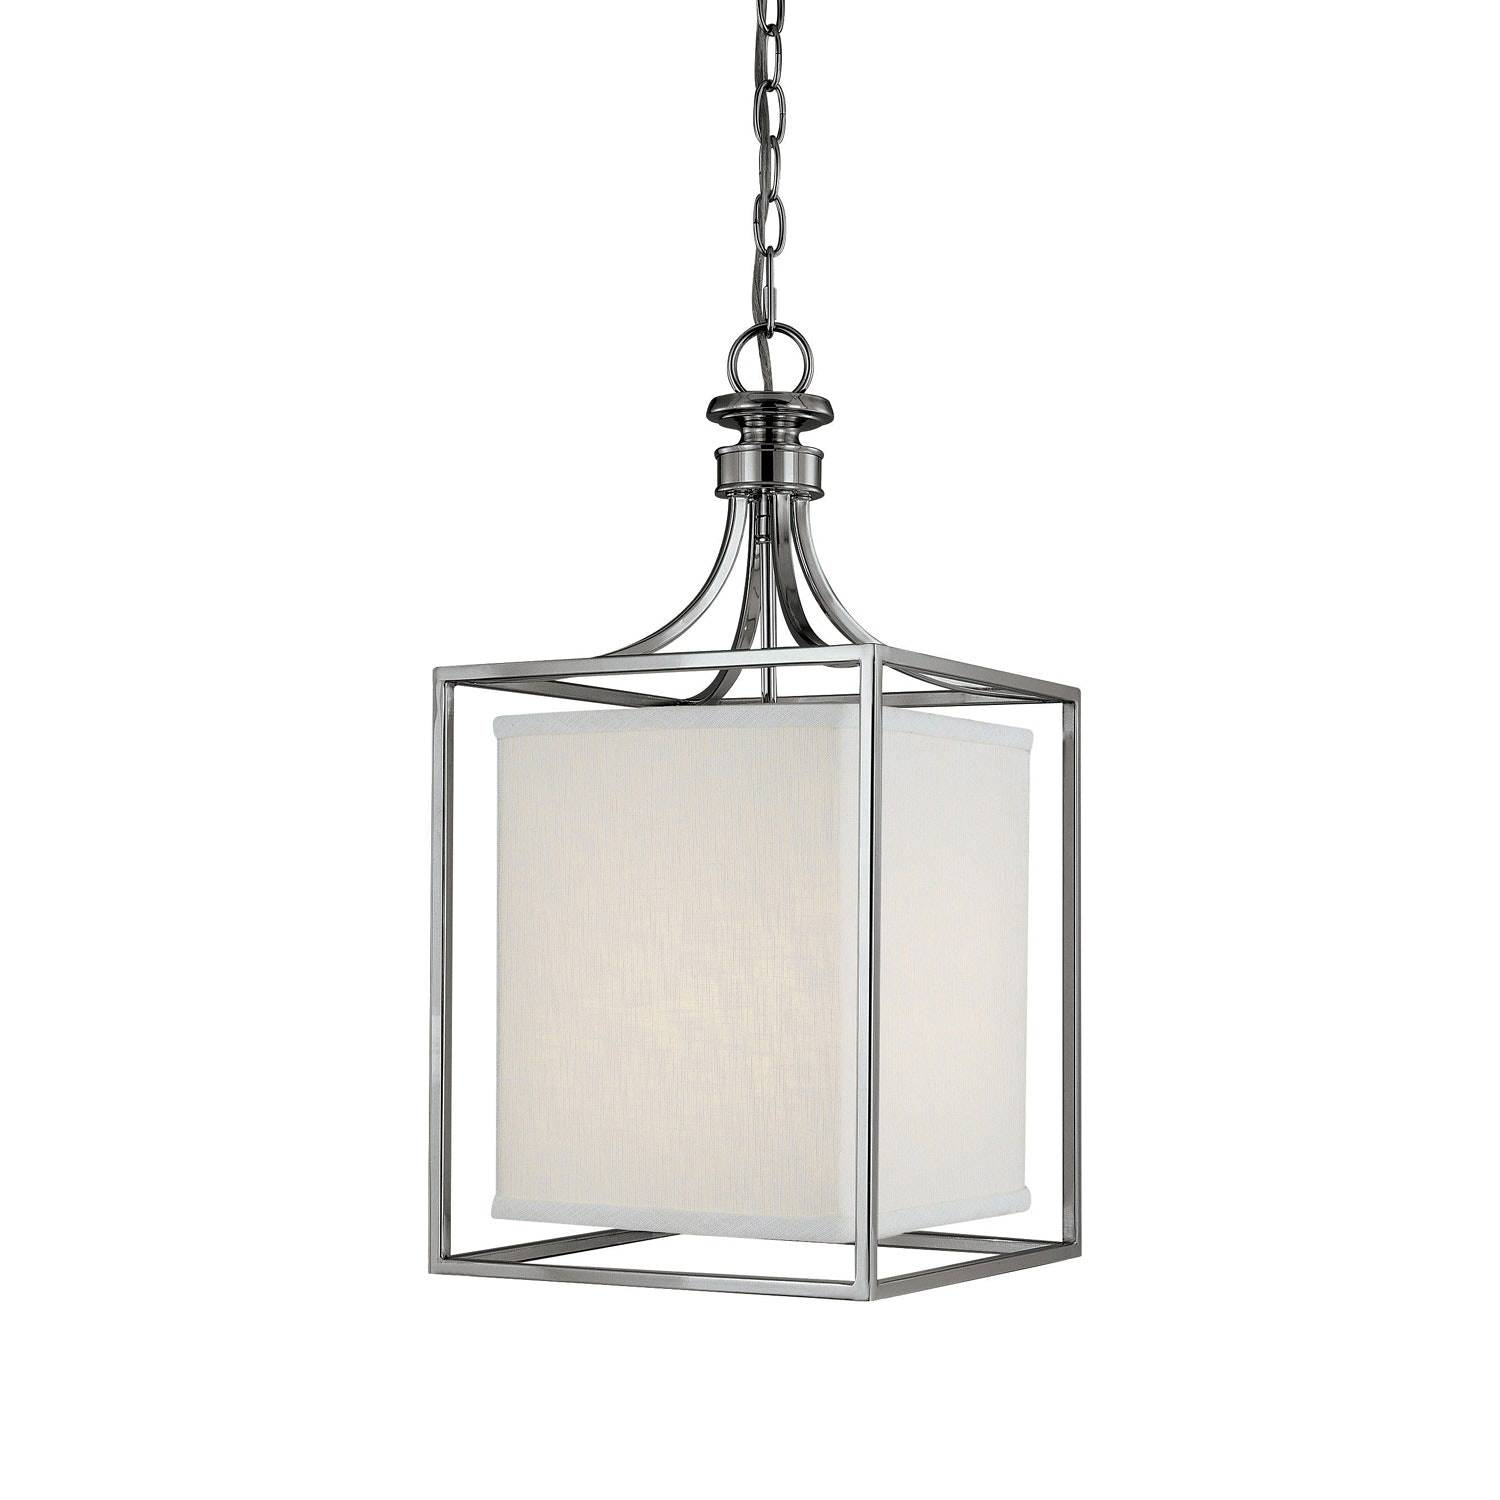 Clearance Pendant Light Ideas inside Clearance Pendant Lighting (Image 2 of 15)